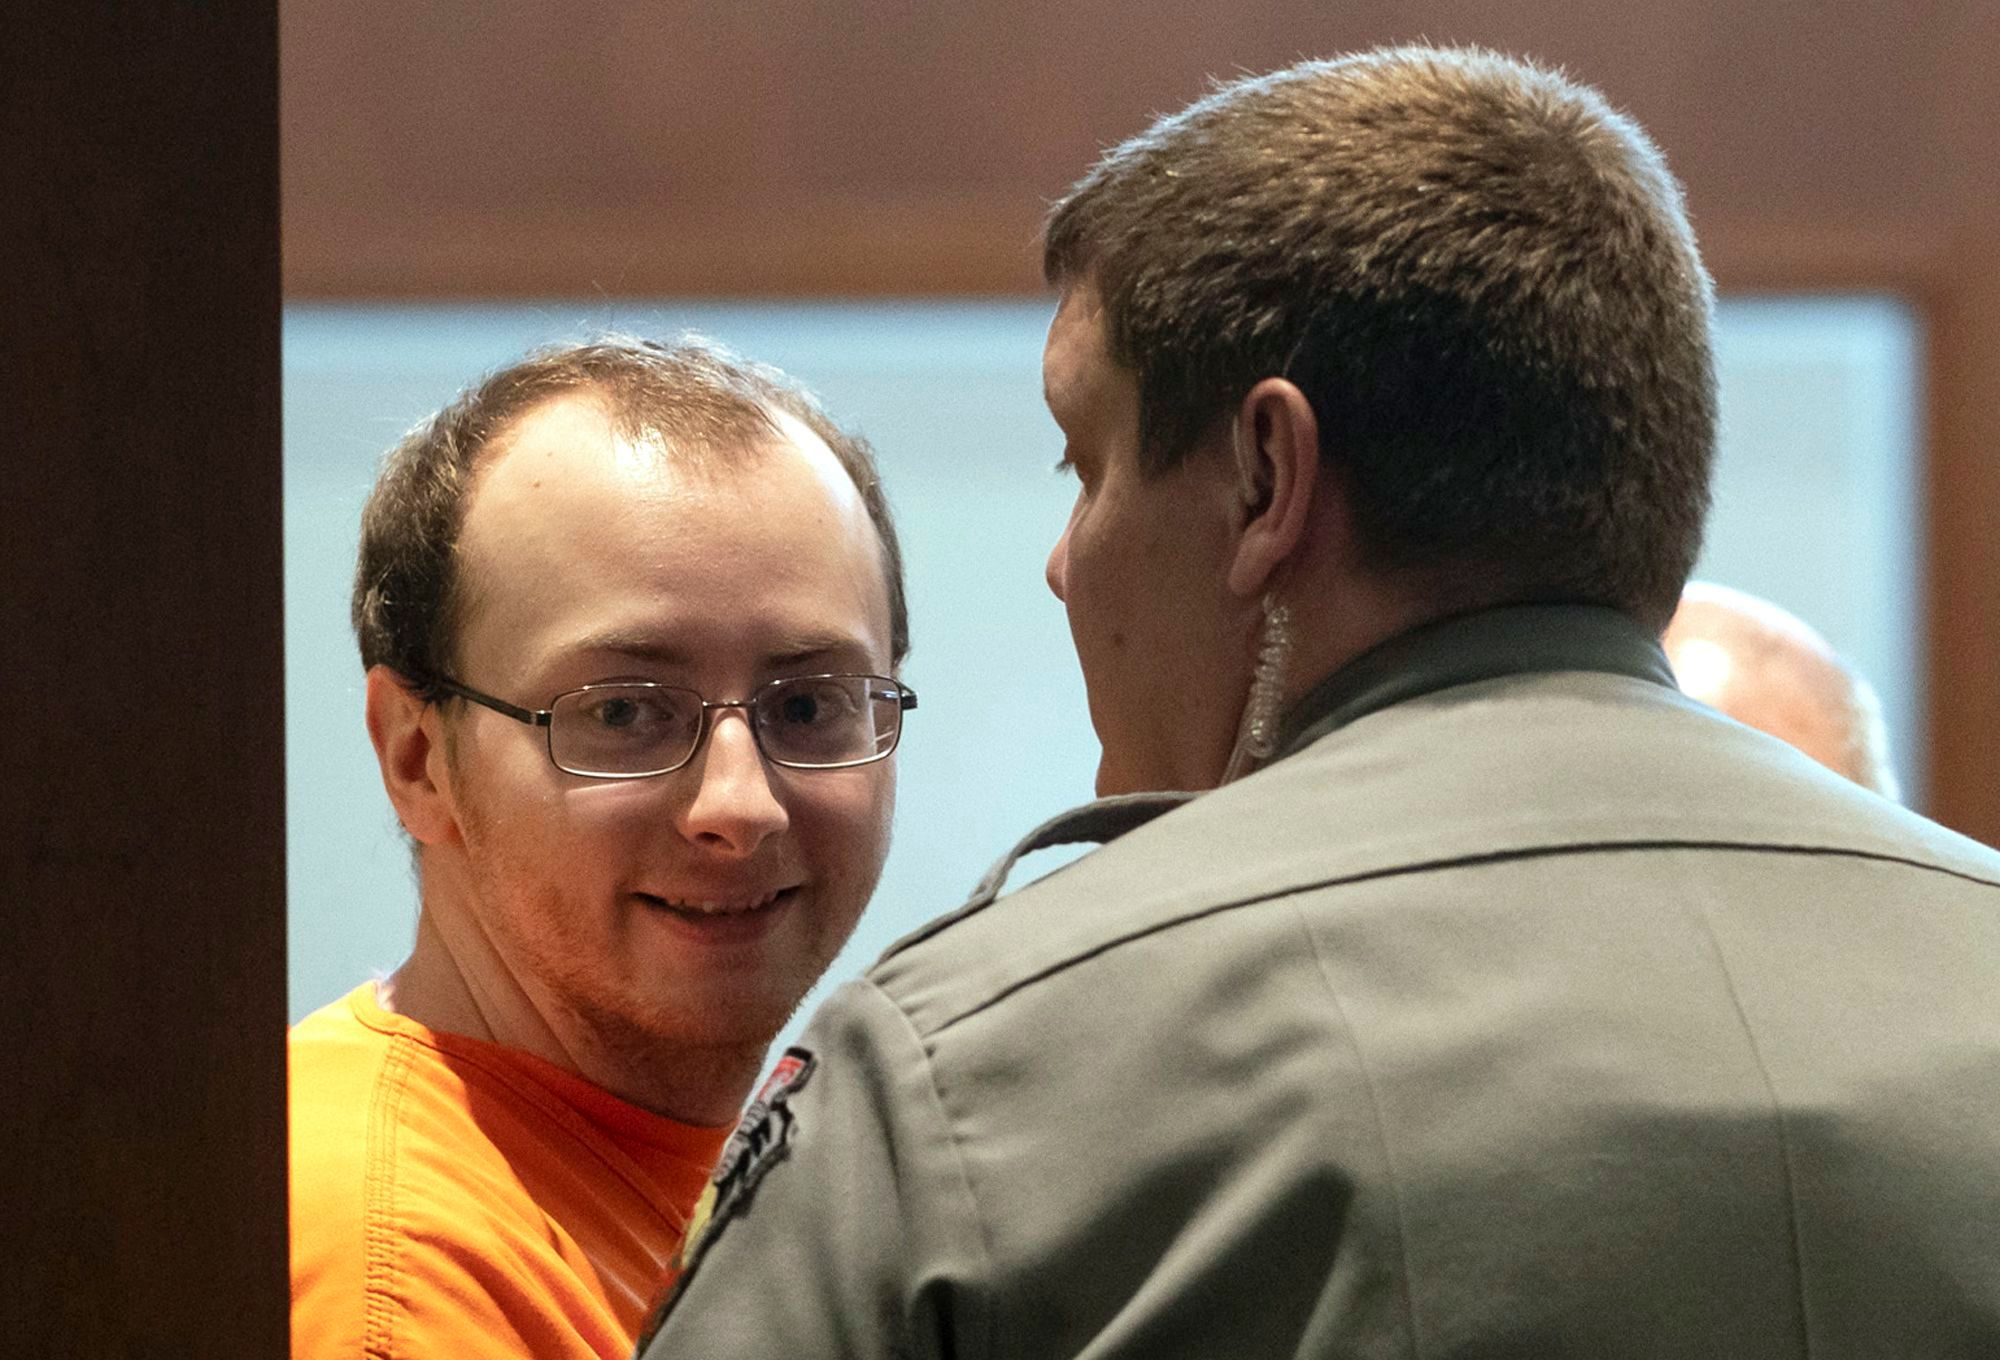 Jayme Closs' Kidnapper Receives Two Life Sentences for Parents' Slayings